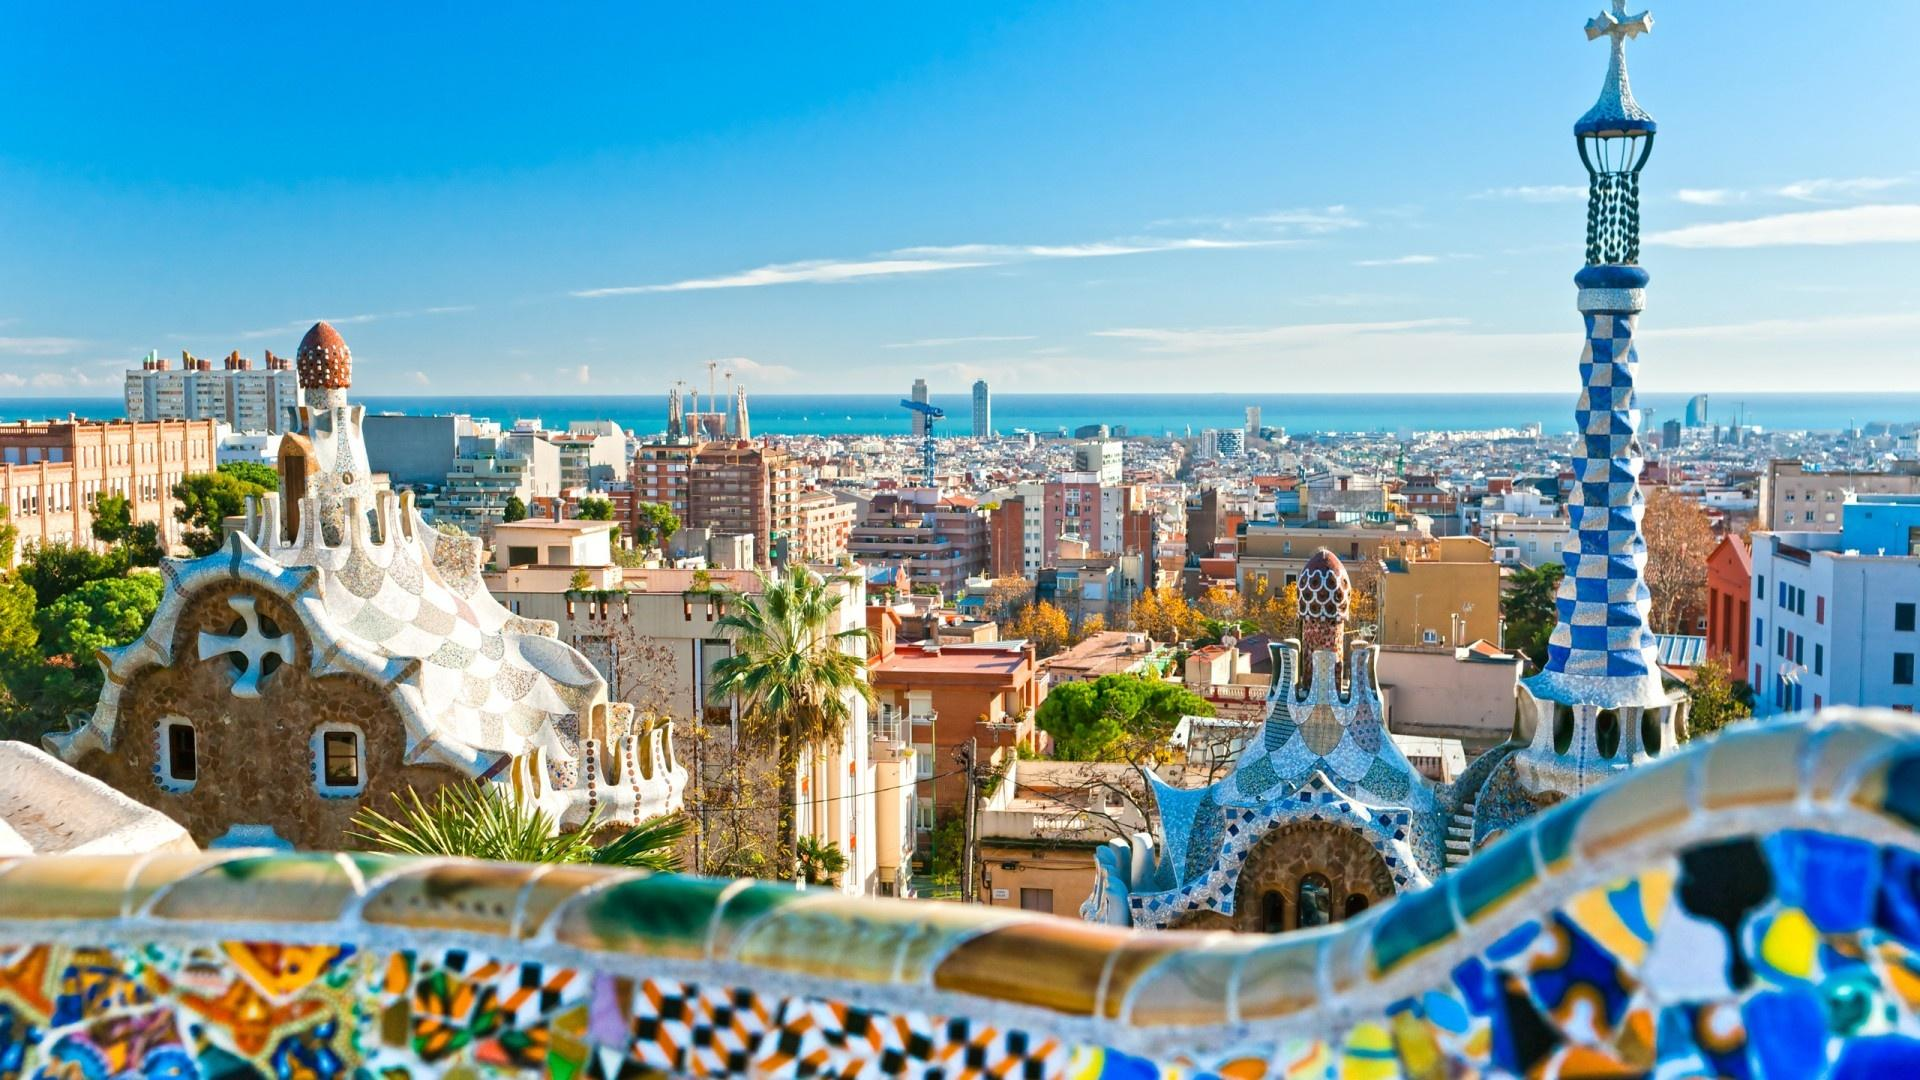 Park Guell Wallpapers Wallpaper Cave